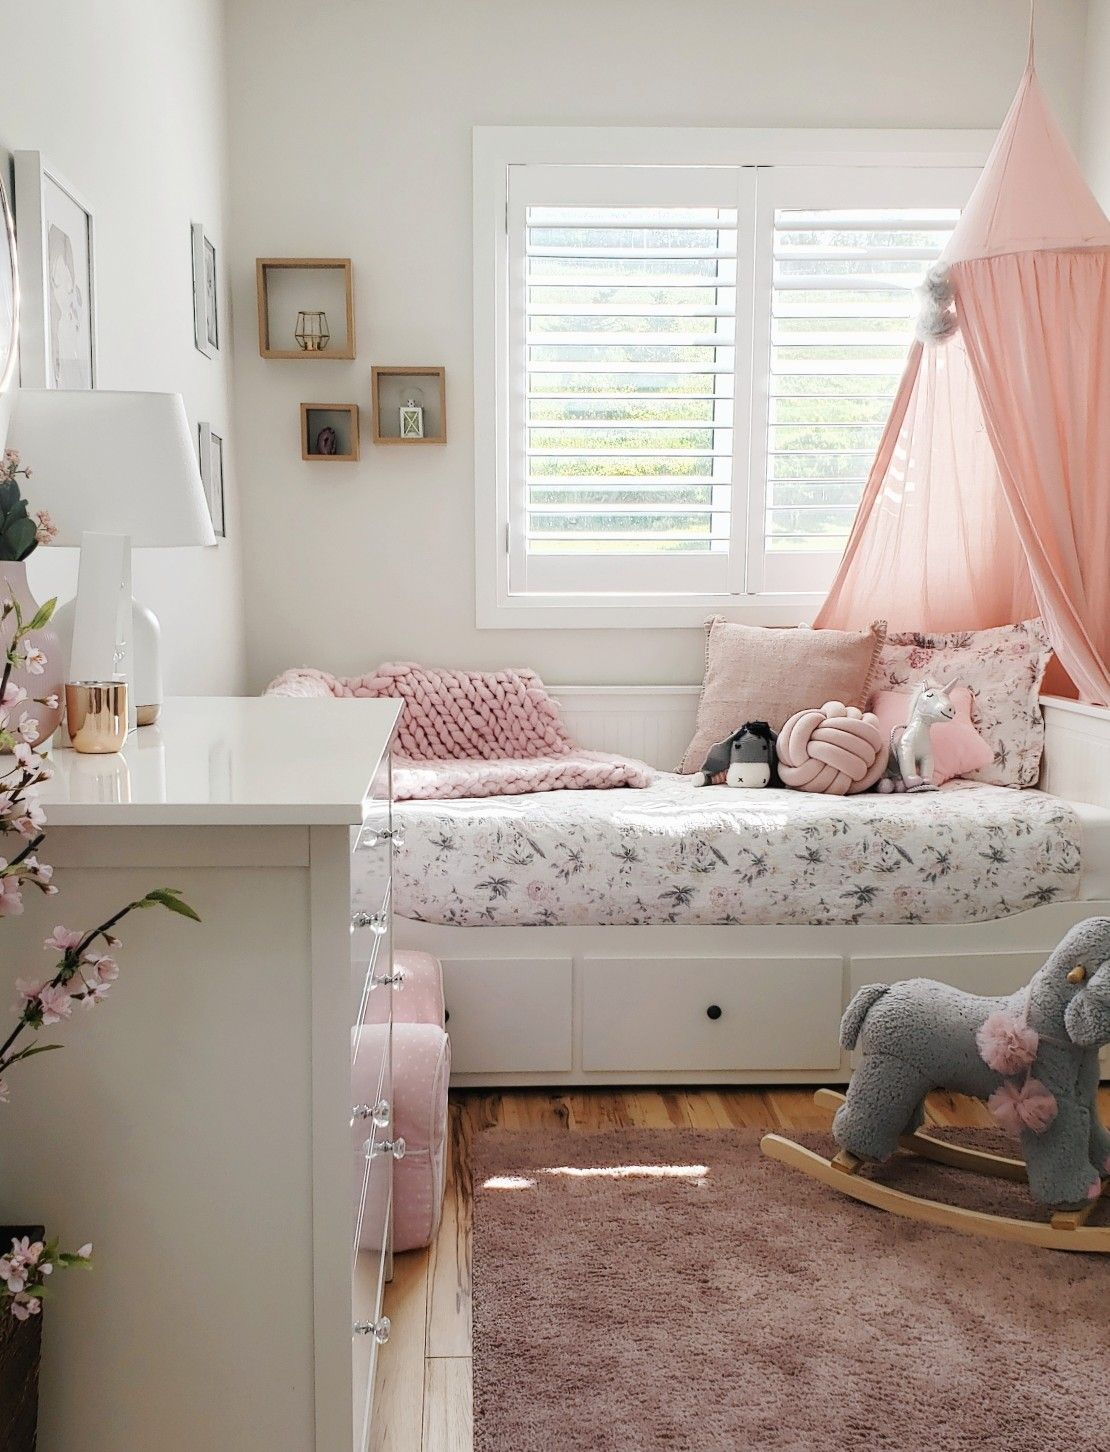 Ikea Kleinkinder Schlafzimmer Toddler Bedroom, Ikea Day Bed, Daybed Ideas, Small Bedroom Idea | Small Room Girl, Toddler Day Bed, Toddler Bedrooms